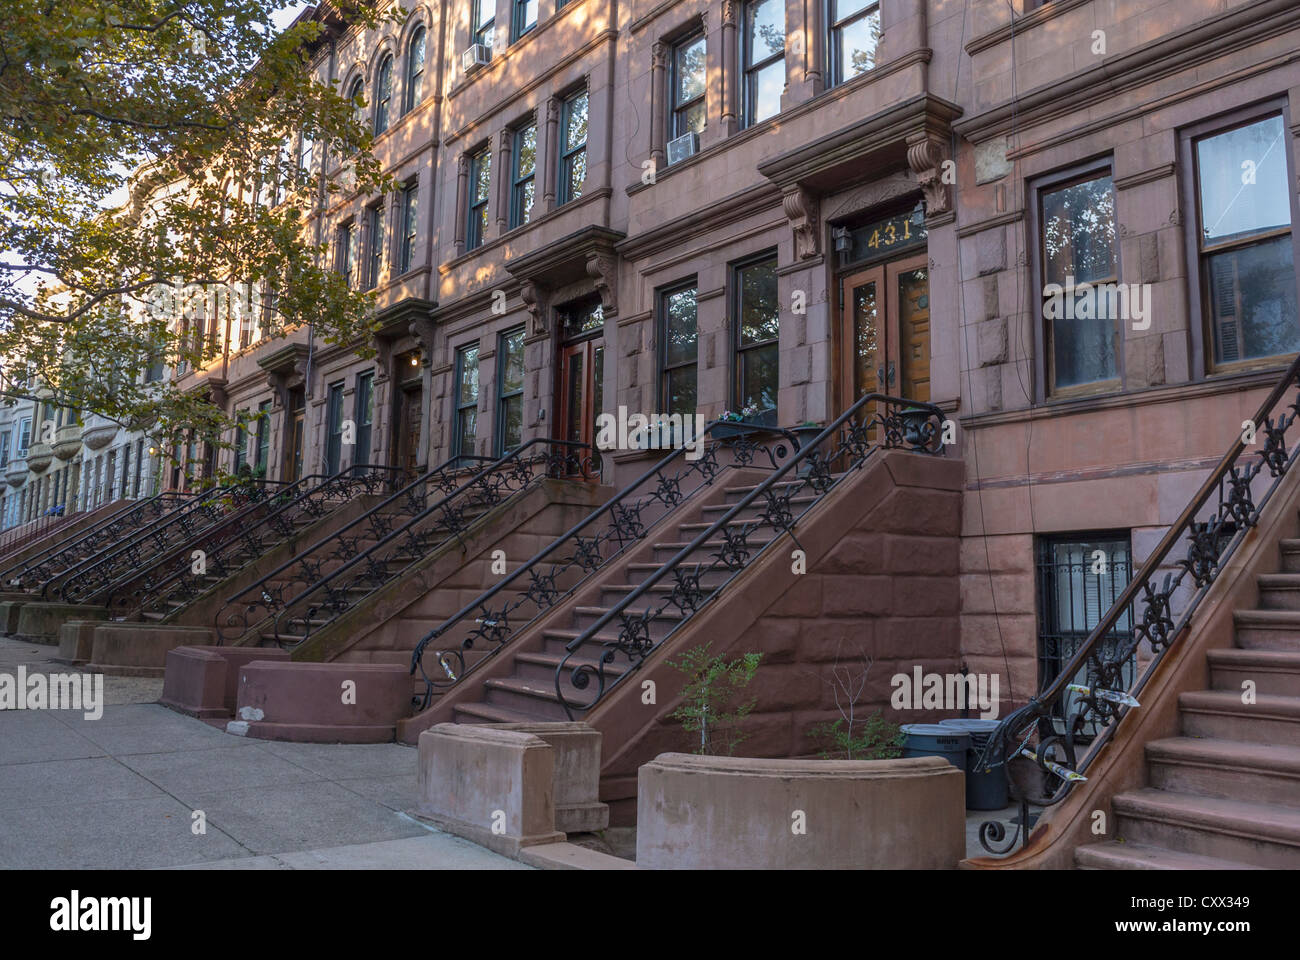 Brownstone houses stock photos brownstone houses stock for Townhouses for sale in harlem